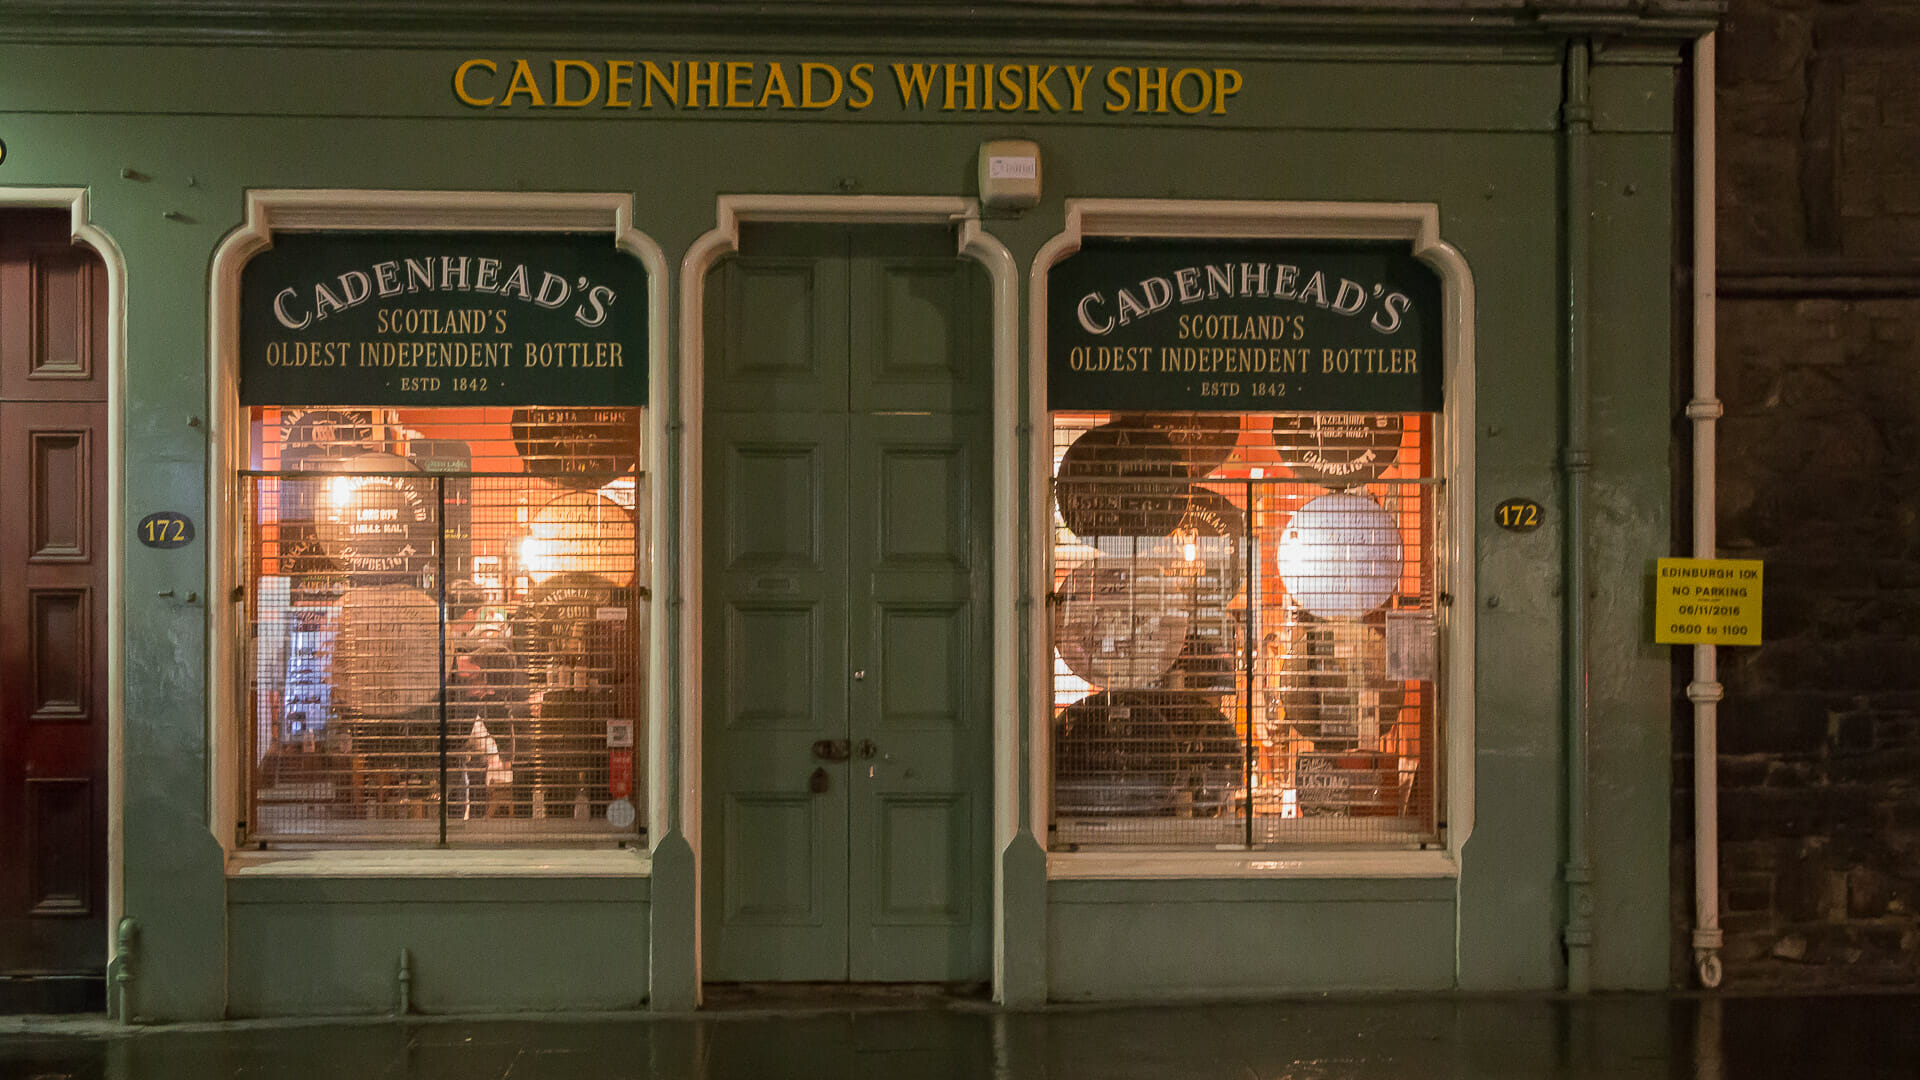 Cadenheads Whisky Shop